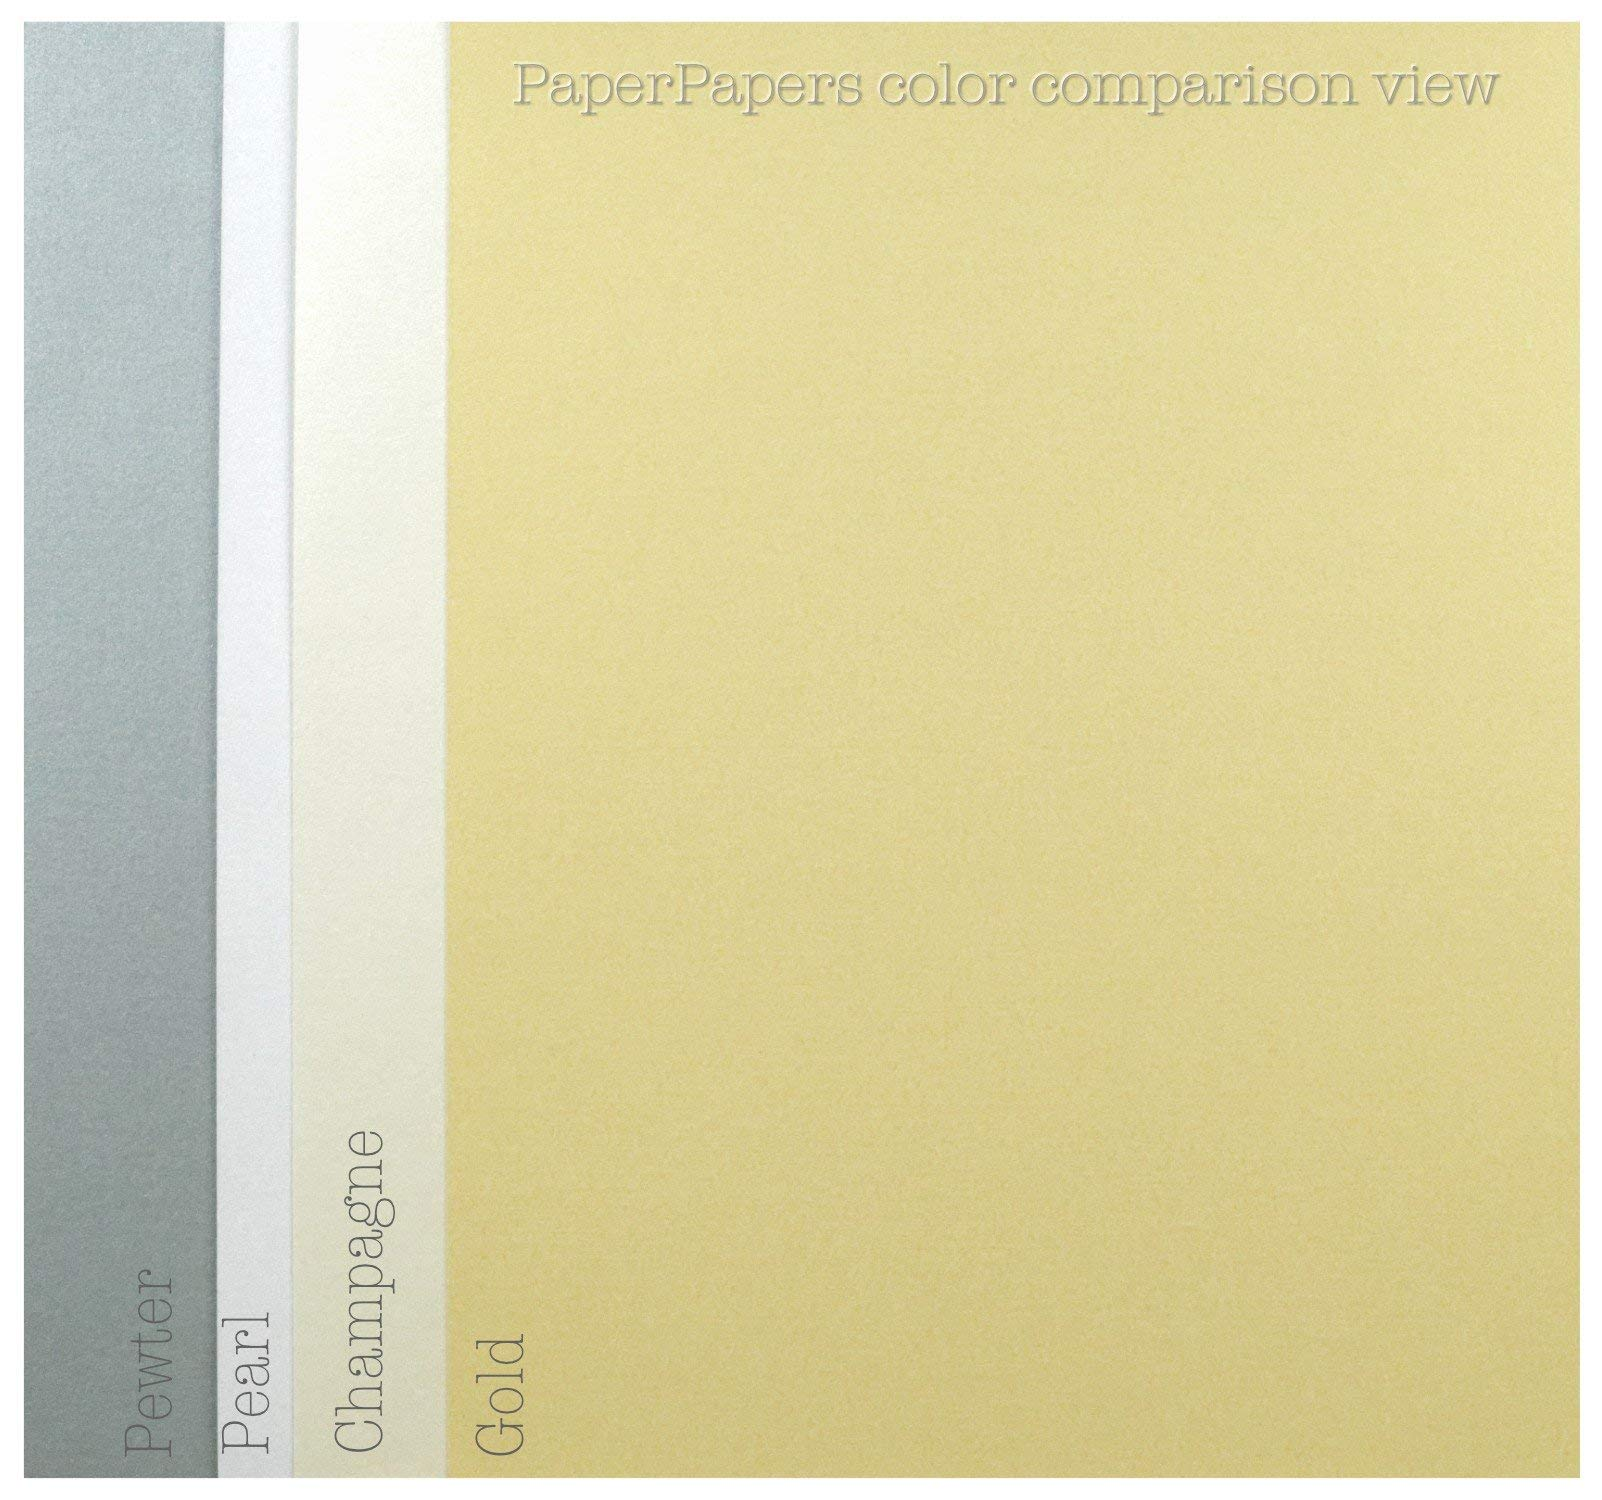 Shimmer Off-White Champagne 8-1/2-x-11 32T Lightweight Multi-use Paper 200-pk - PaperPapers 2pBasics 118 GSM (32/80lb Text) Letter Size Everyday Metallic Paper for Professionals, Designers and DIY by 2pBasics